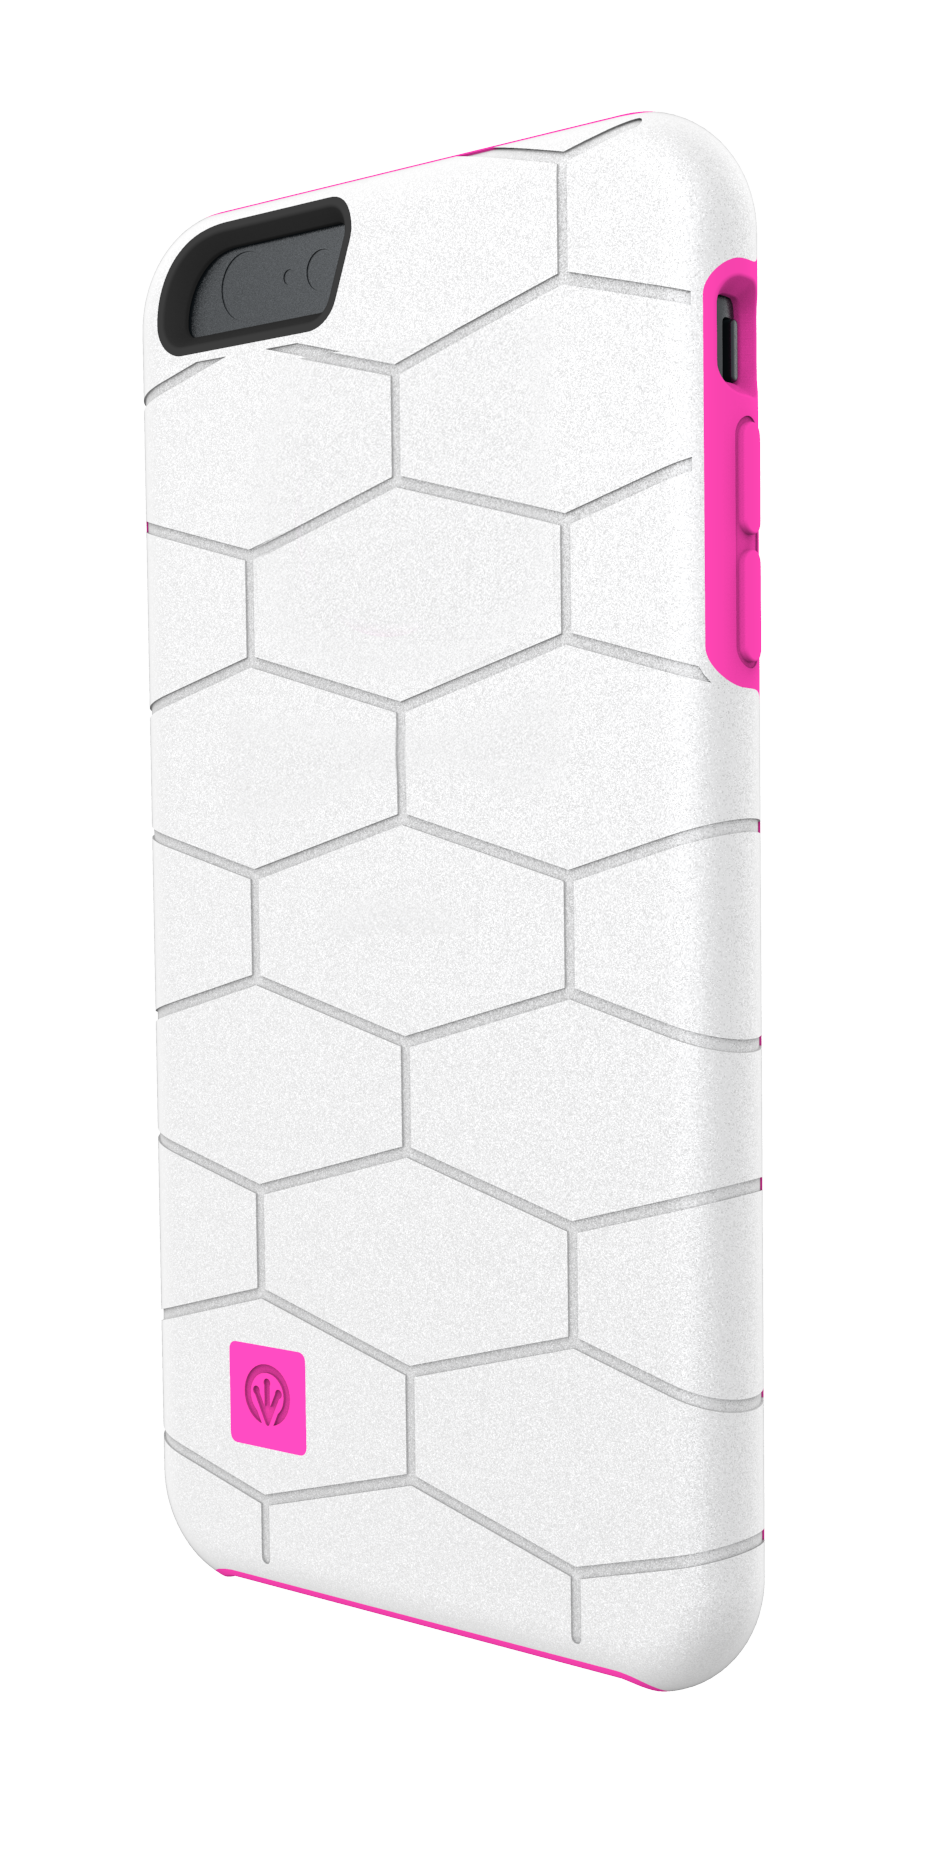 iFrogz Cocoon Case for the Apple iPhone 6 Plus/6s Plus